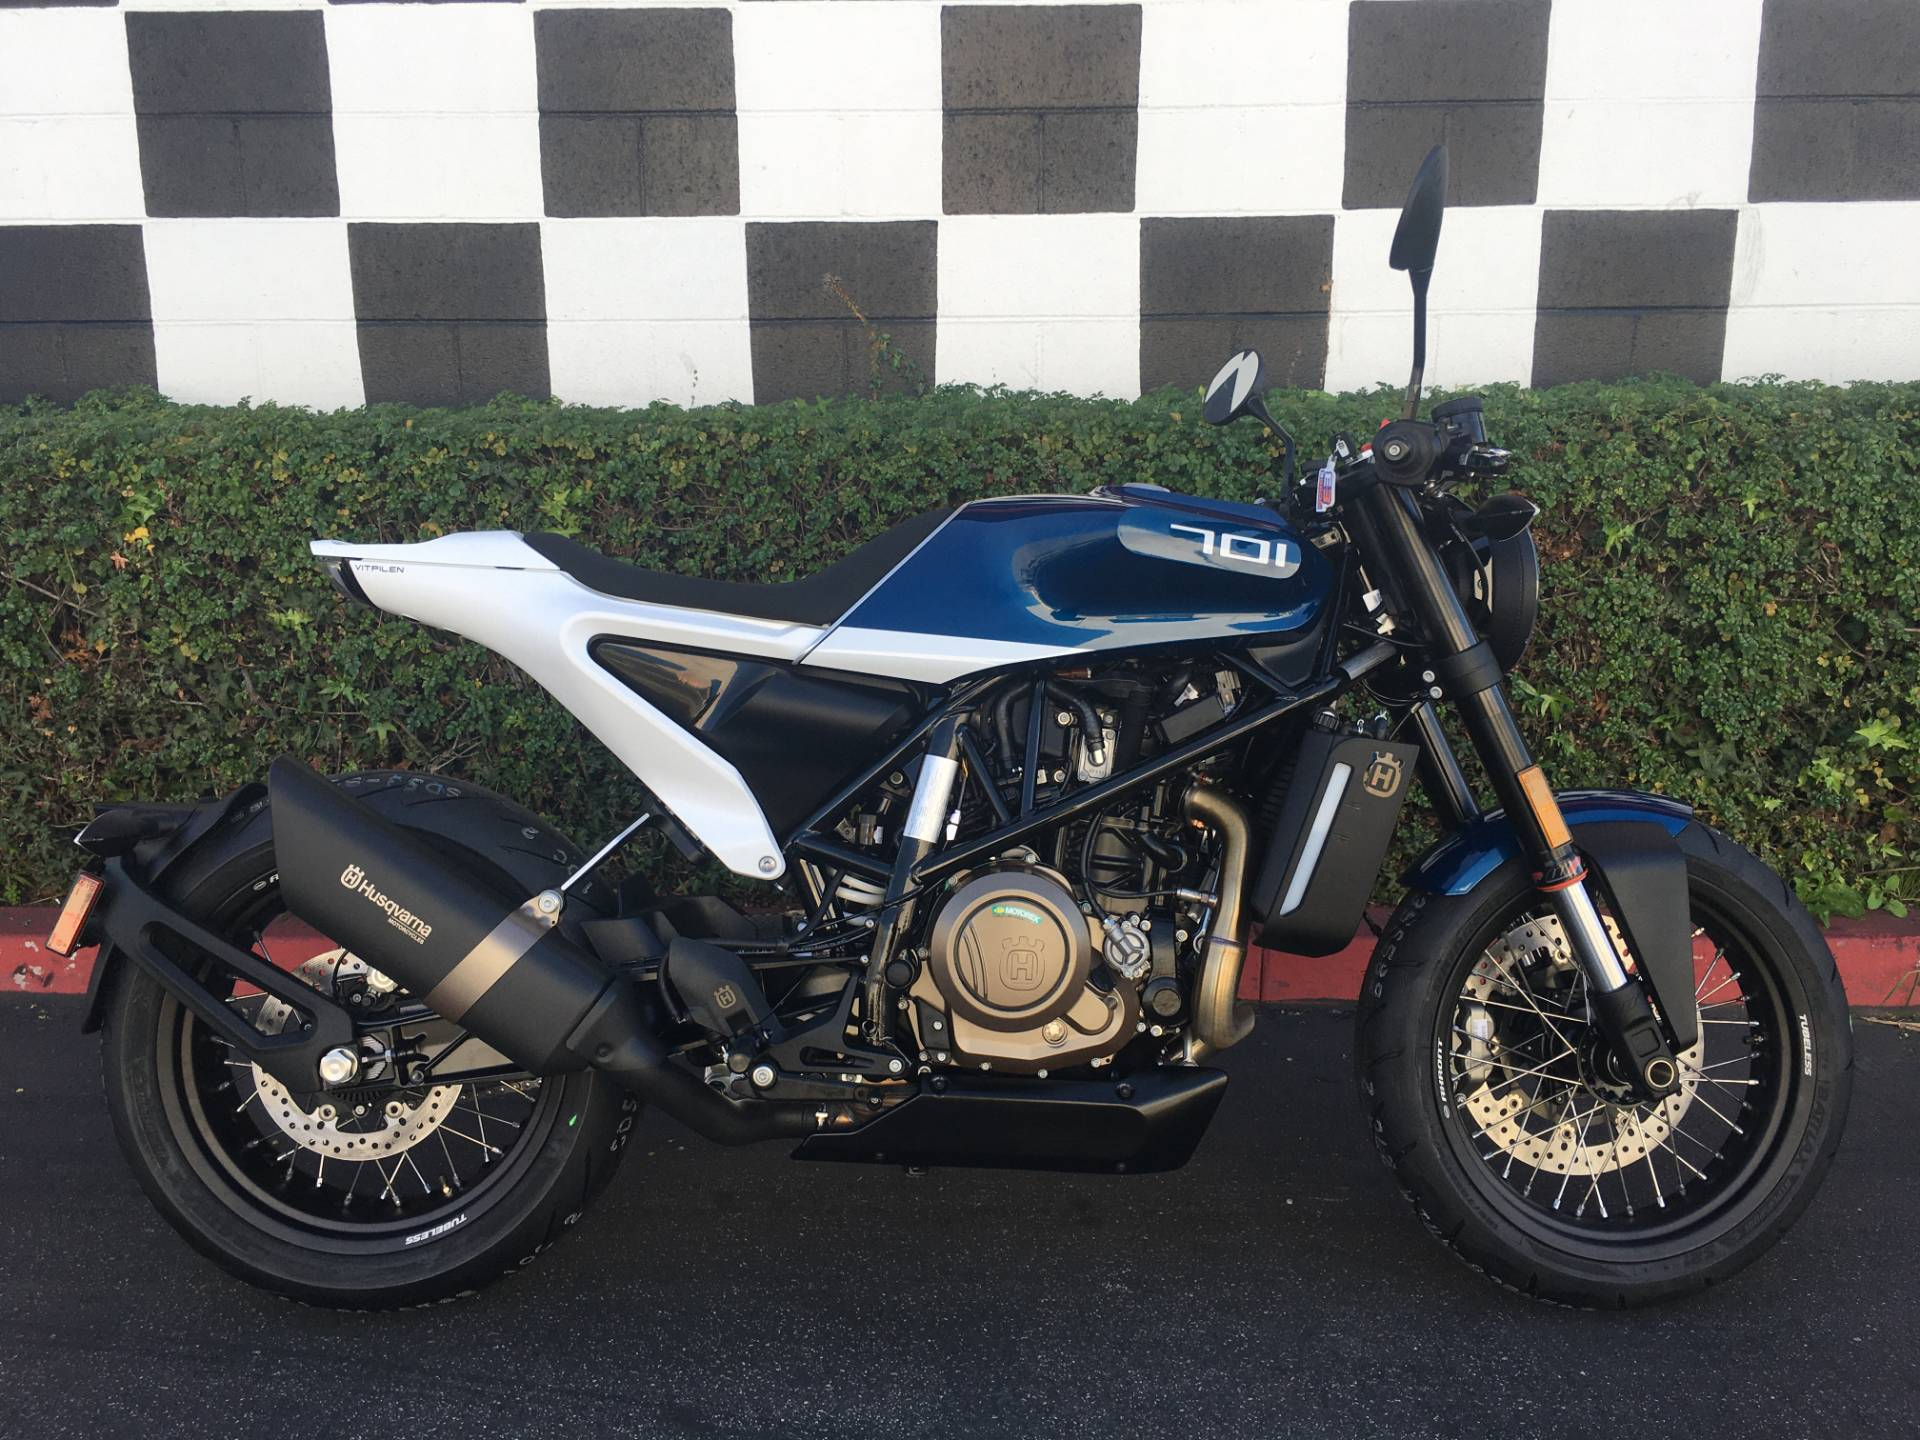 2020 Husqvarna Vitpilen 701 in Costa Mesa, California - Photo 1